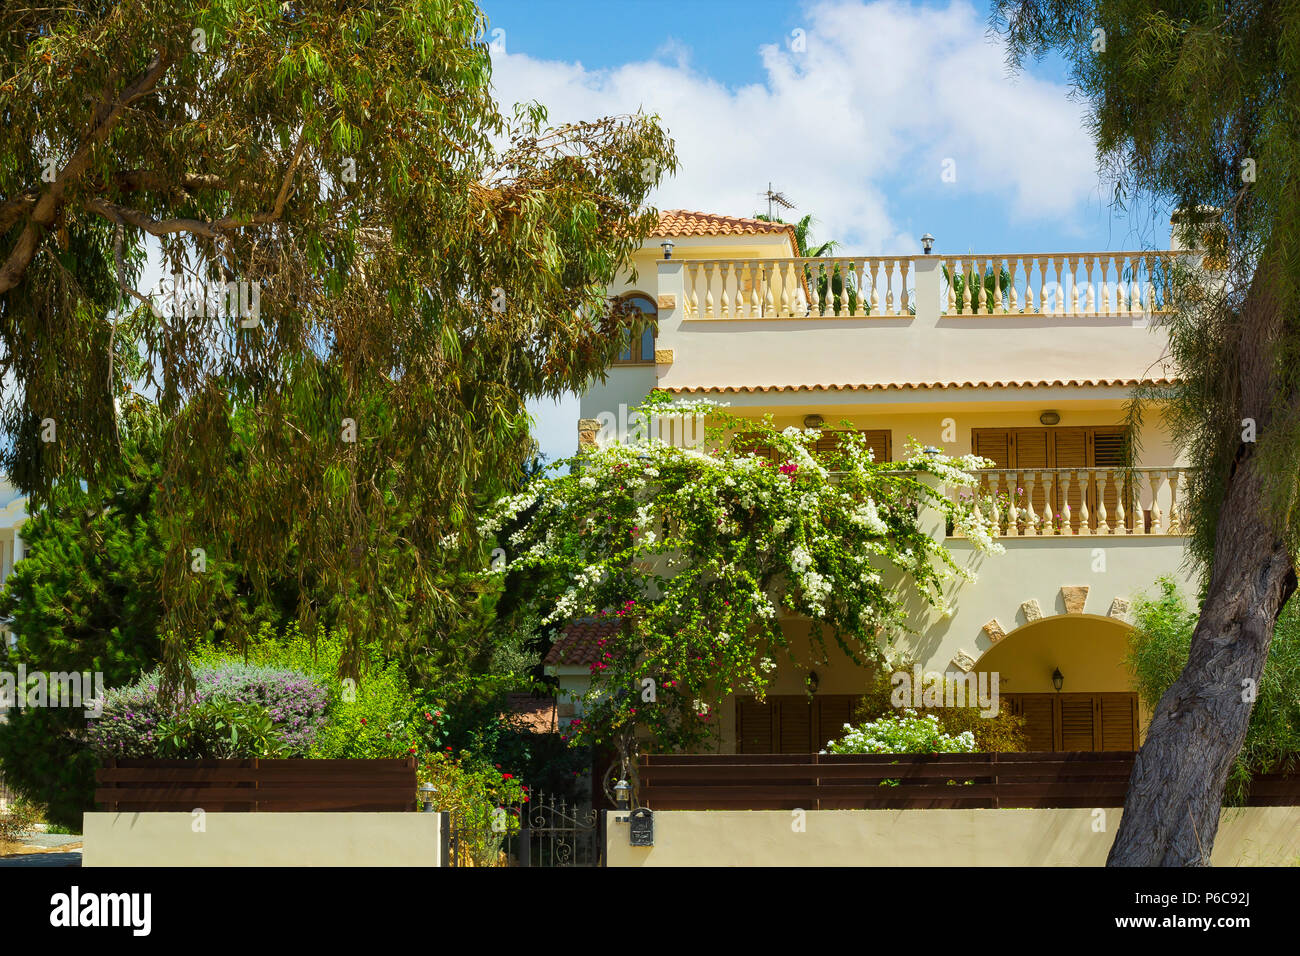 Facade of house with terrace covered with flowering bush and garden around against blue sky Stock Photo